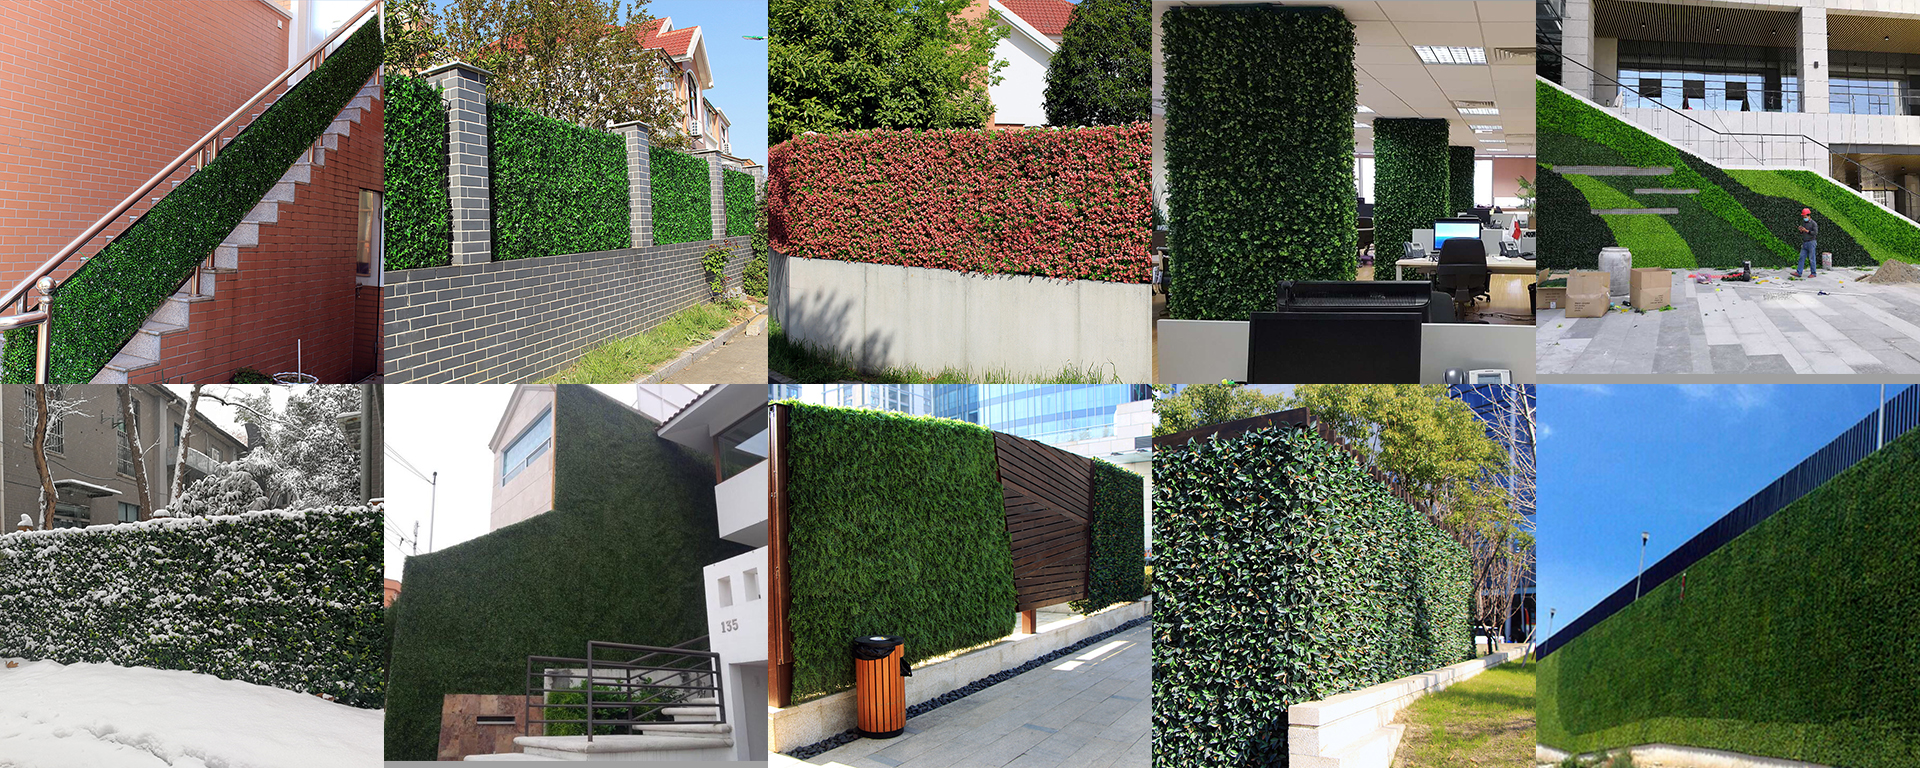 Artificial Boxwood Pea Leaf Hedge Mat Faux Fence Topiary Screen For Outdoor Artificial Green Walls Color Cable Tie Dimensions 1 Pcs Wall Decor Nursery Baby Nursery